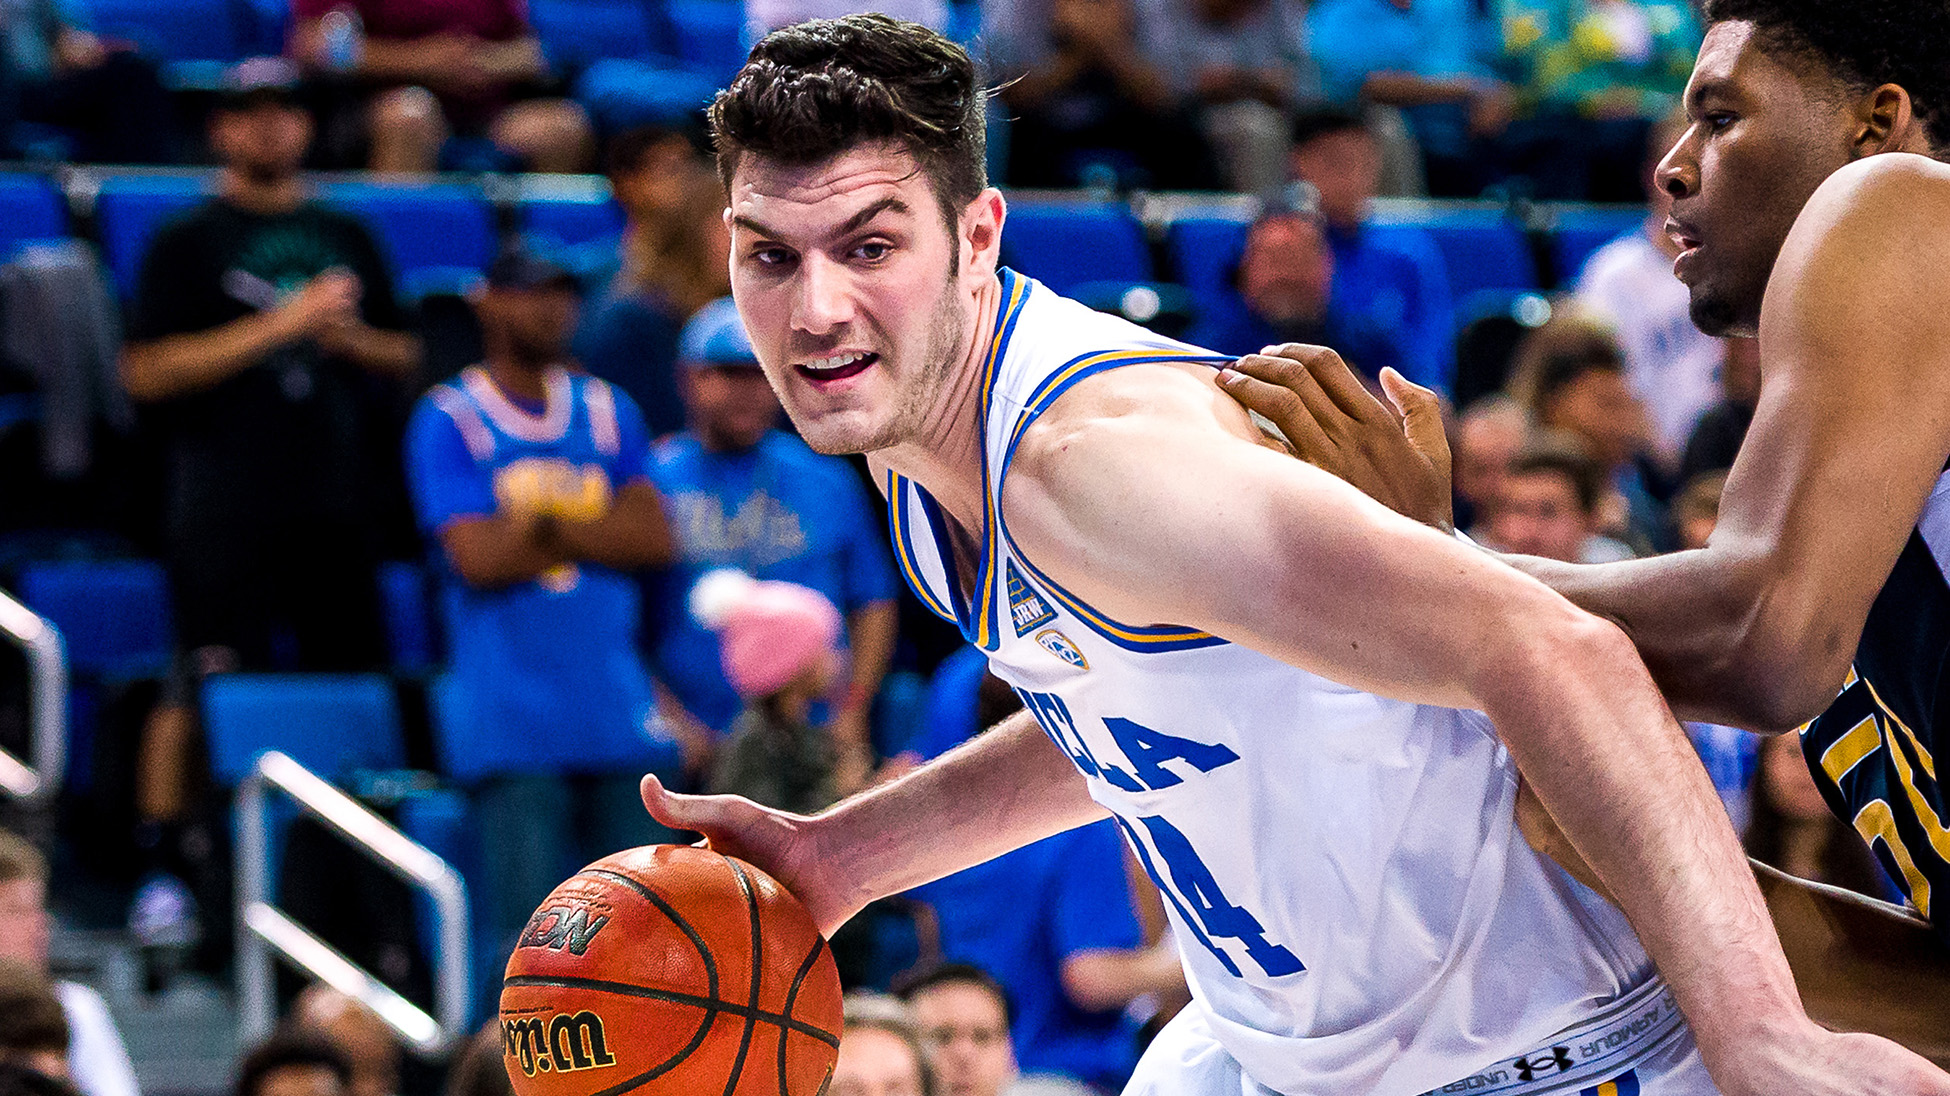 Four Bruins Selected in 2017 NBA Draft UCLABruins